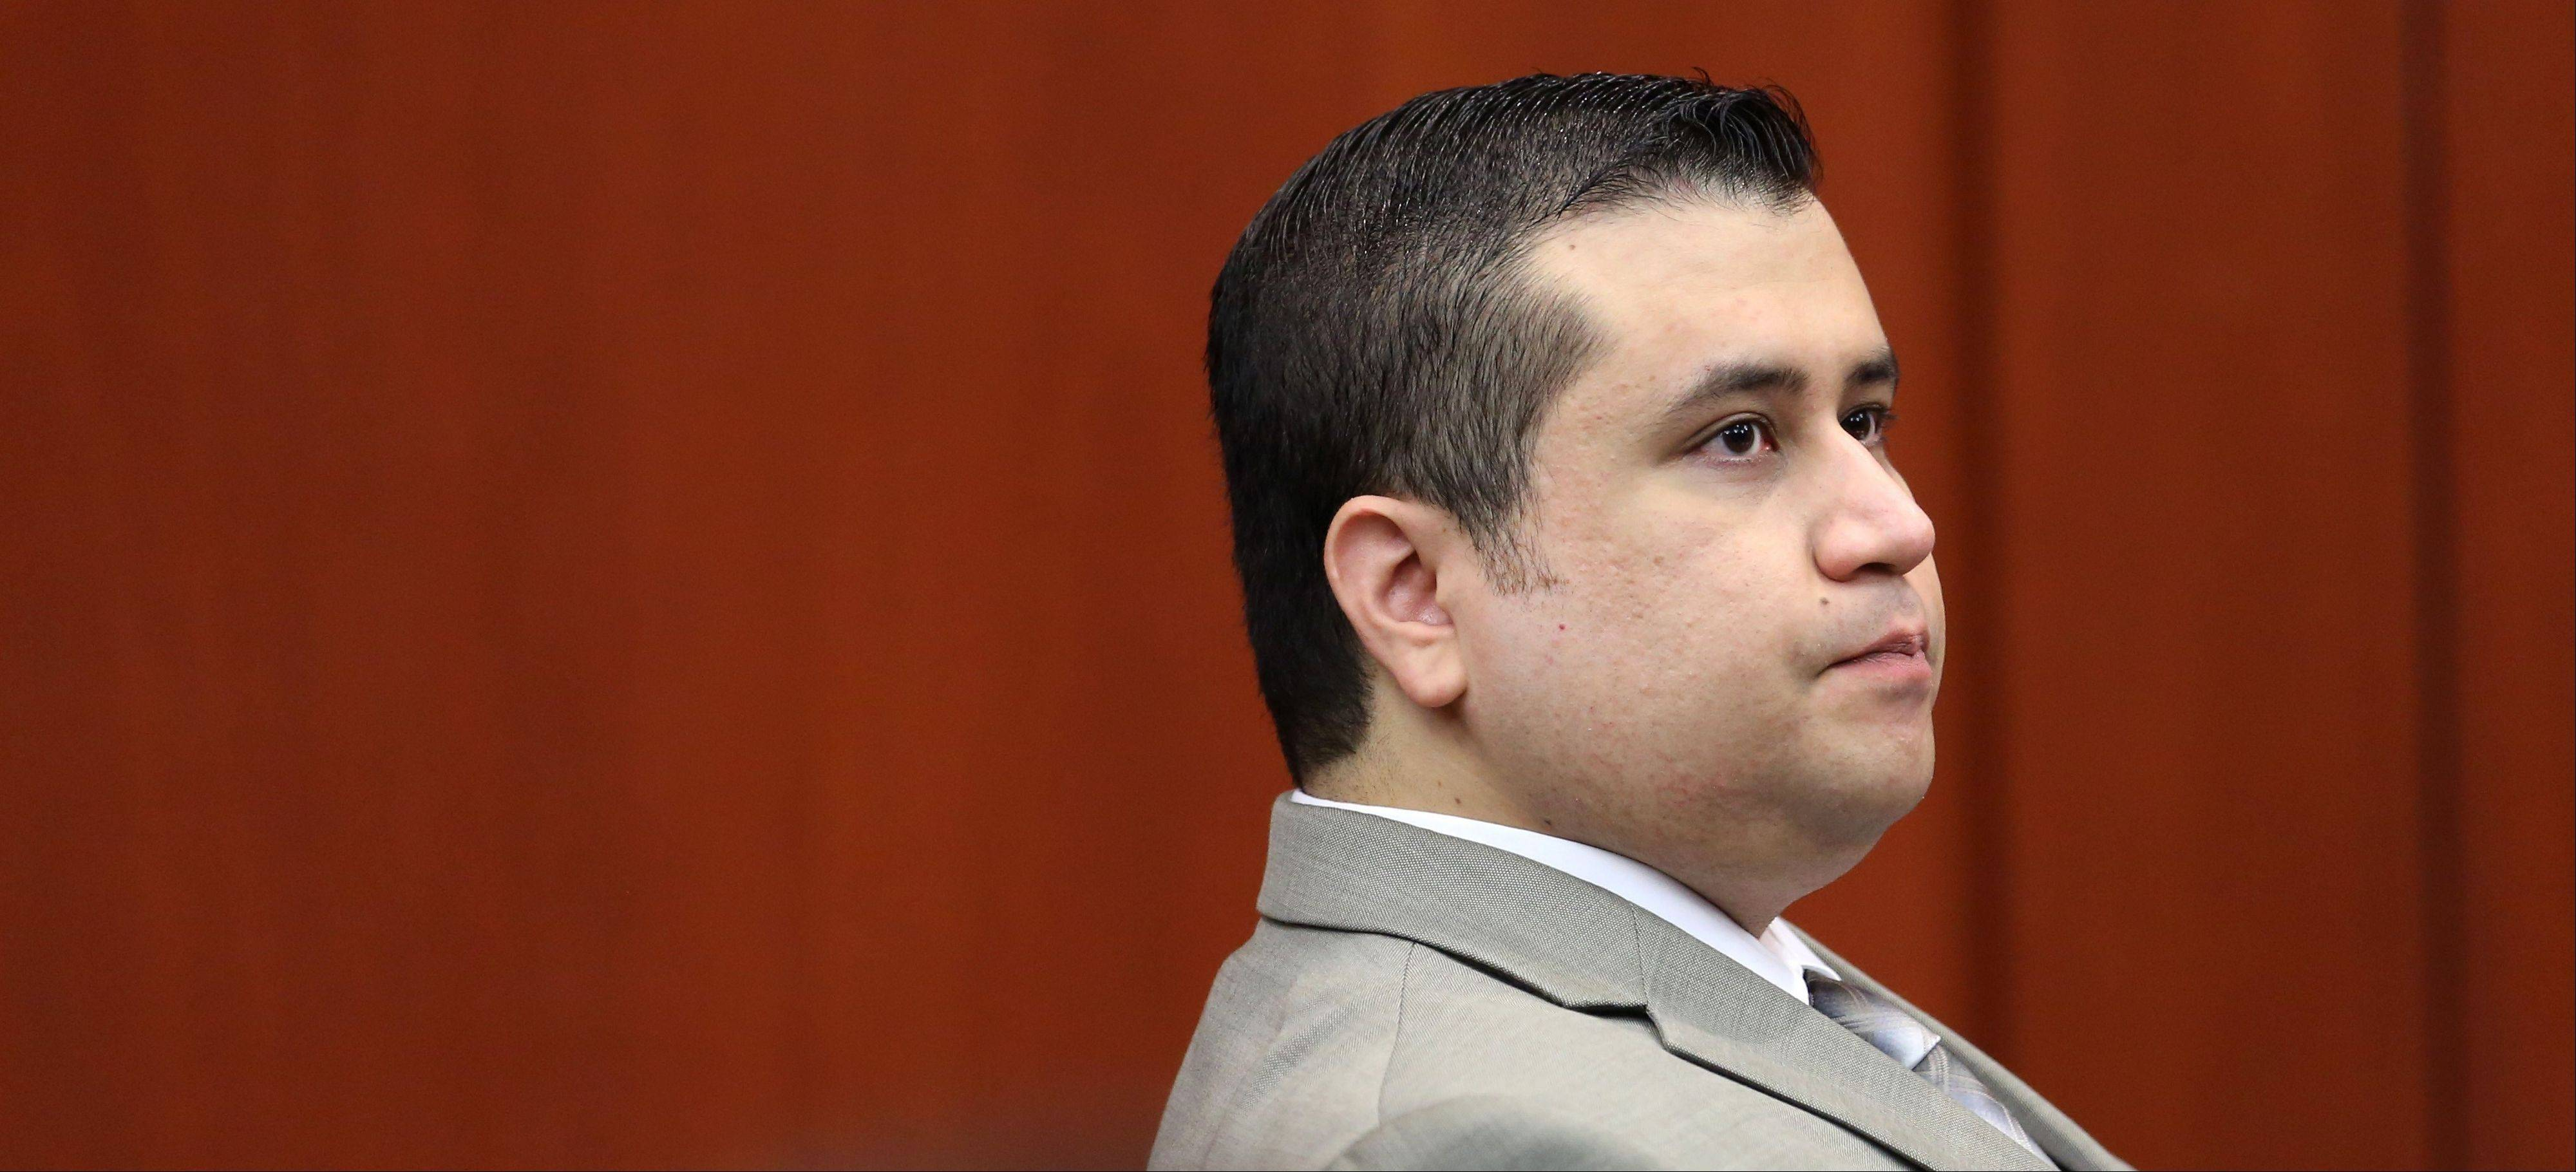 George Zimmerman listens at his trial in Seminole Circuit Court, in Sanford, Fla., Tuesday, July 9, 2013. Zimmerman is charged with second-degree murder in the fatal shooting of Trayvon Martin, an unarmed teen, in 2012.